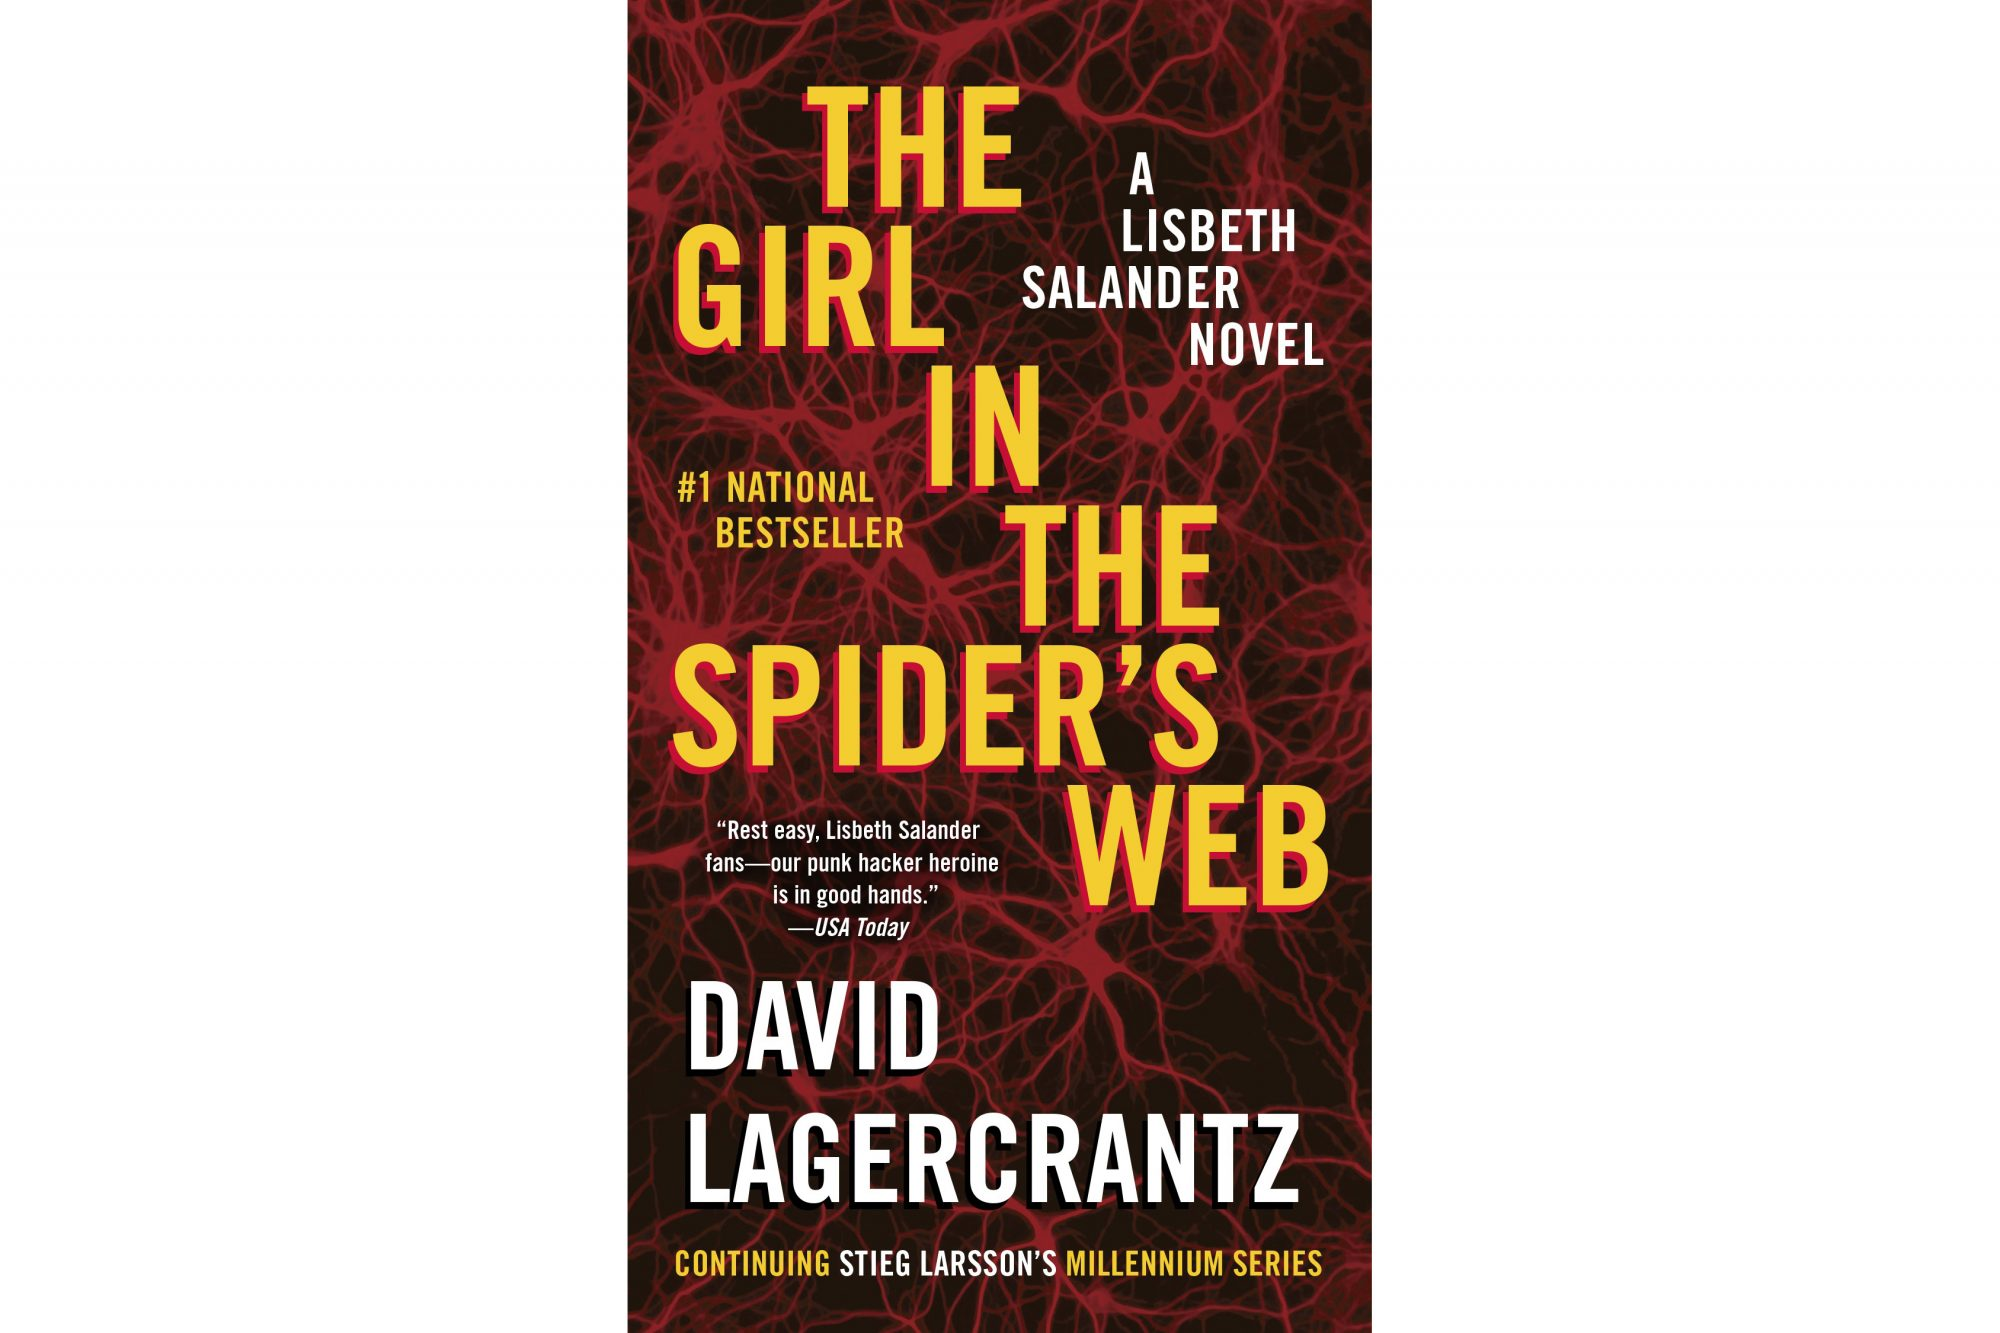 The Girl in the Spider's Web, by David Lagercrantz